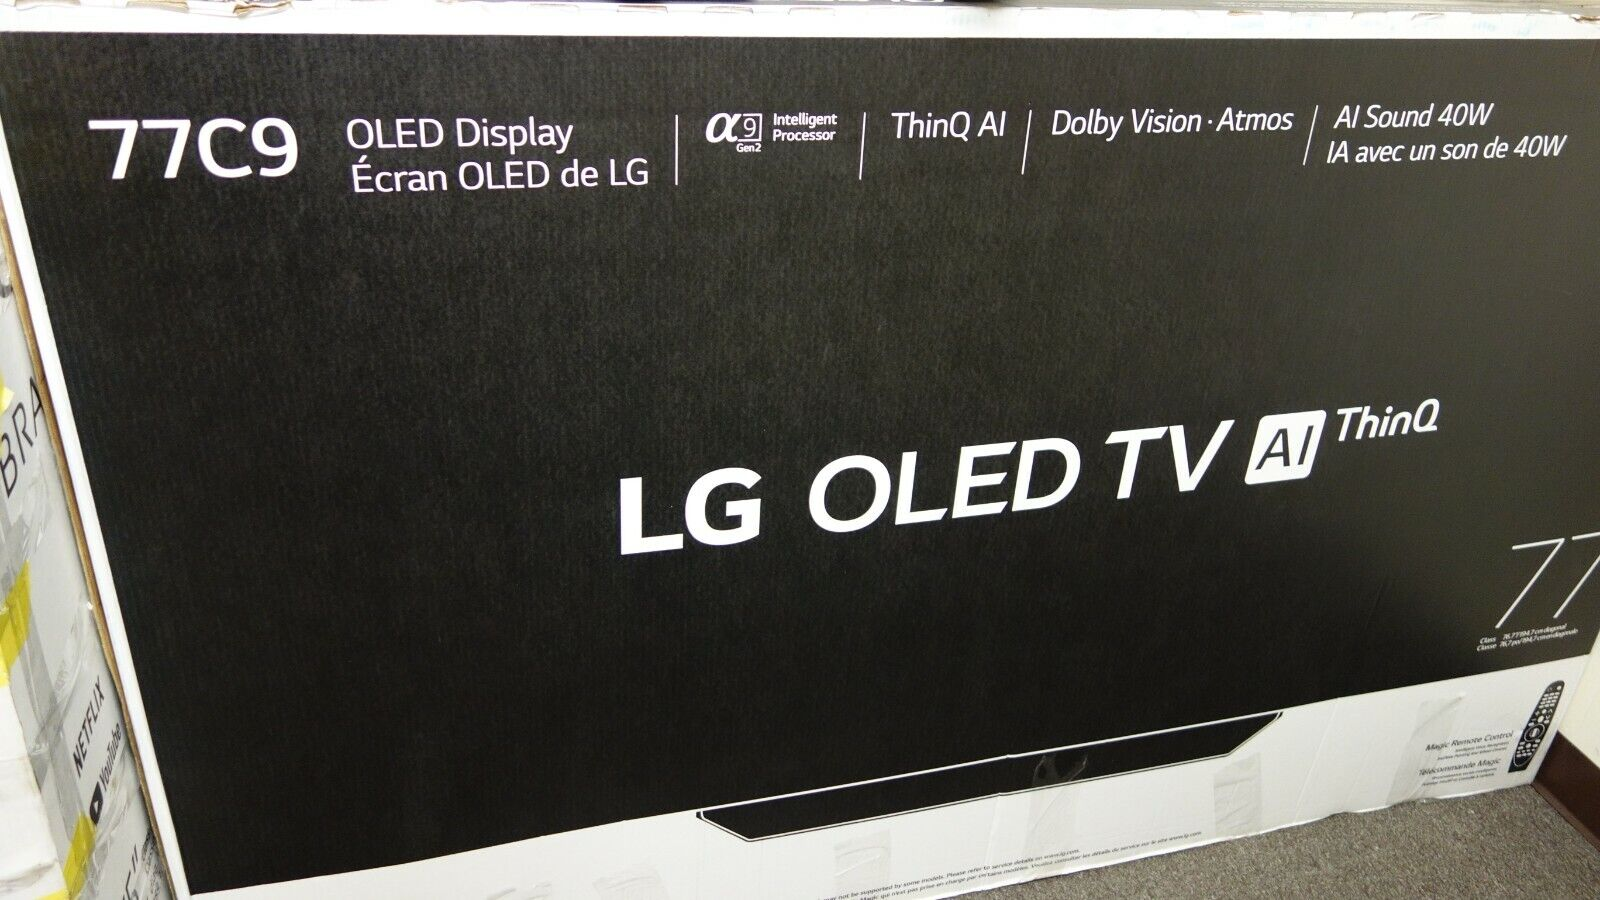 LG C9 77 inch Class 4K Smart OLED TV w/ AI ThinQ®(AR76). Available Now for 2999.99